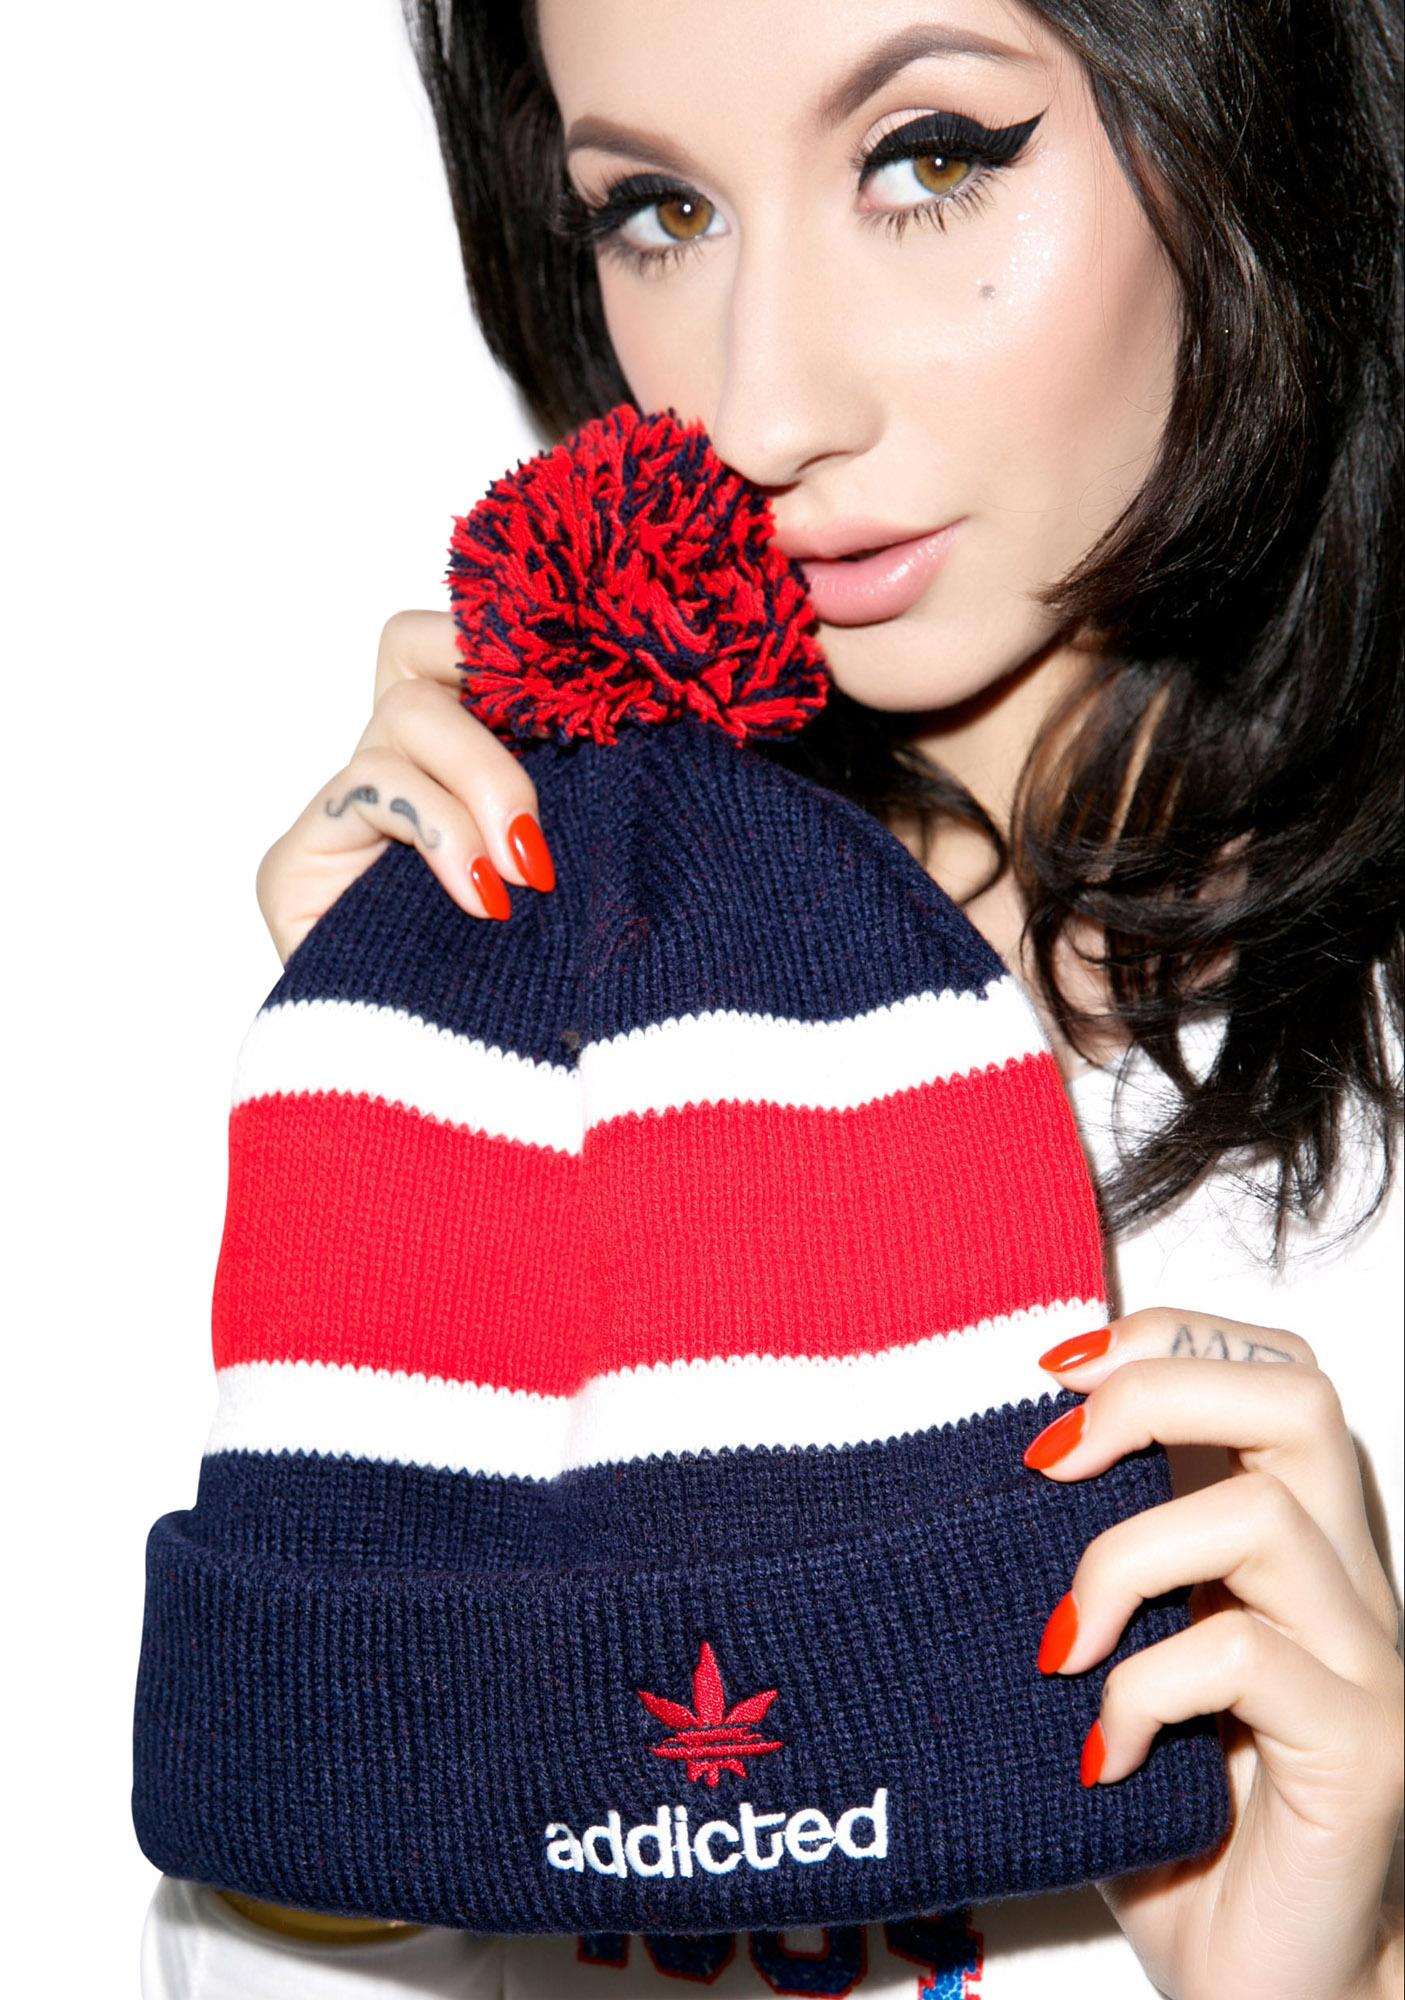 United Couture Addicted Boy Pom Pom Beanie